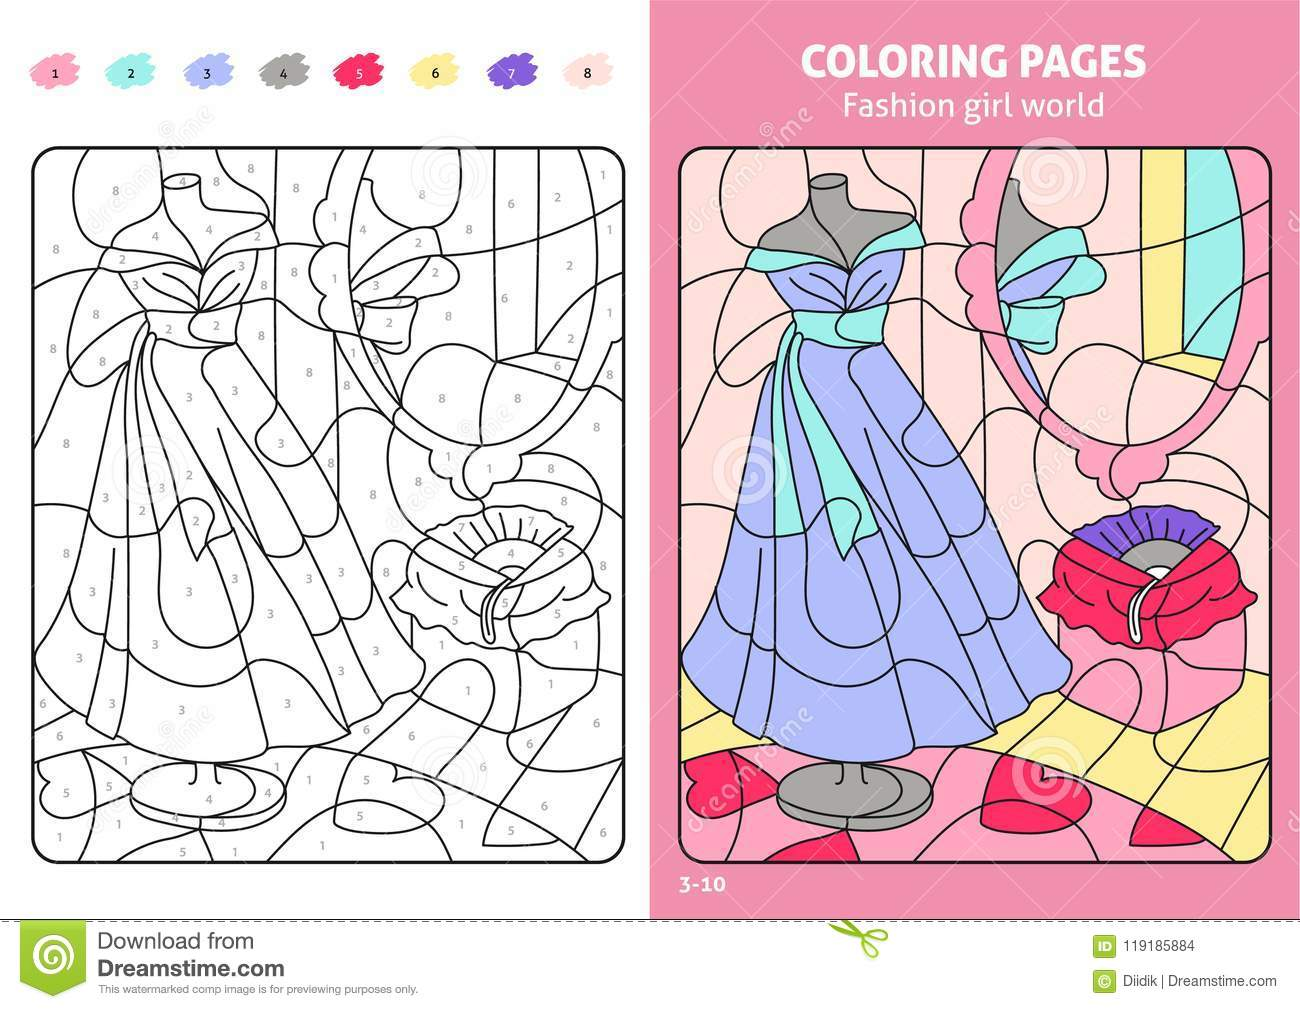 Fashion Coloring Books For Girls: Coloring Pages For Kids, Girls ... | 1009x1300